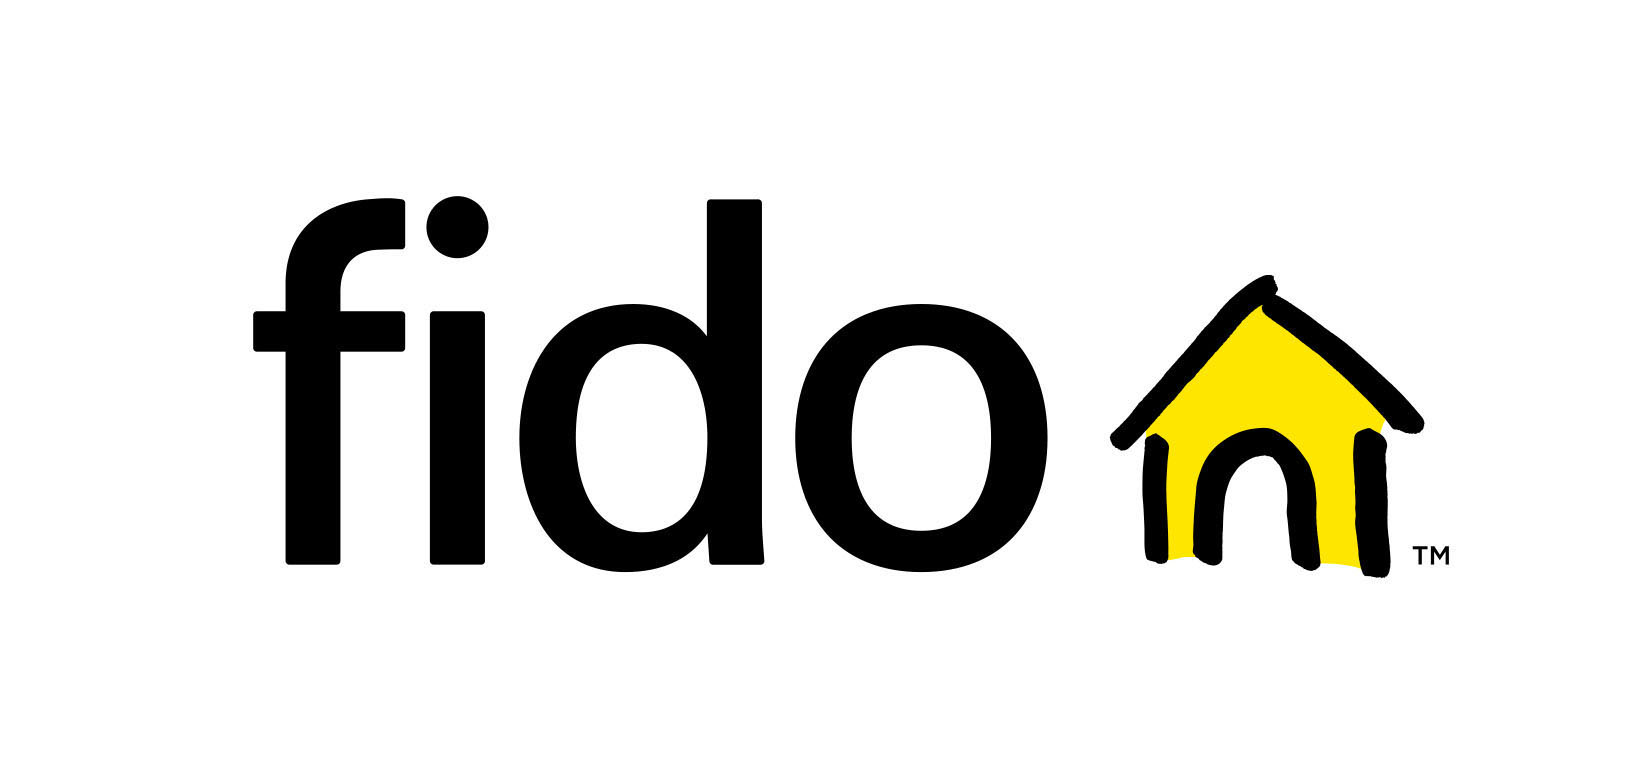 FIDO Alliance Wishes to Eliminate Password-Based Security from IoT Devices